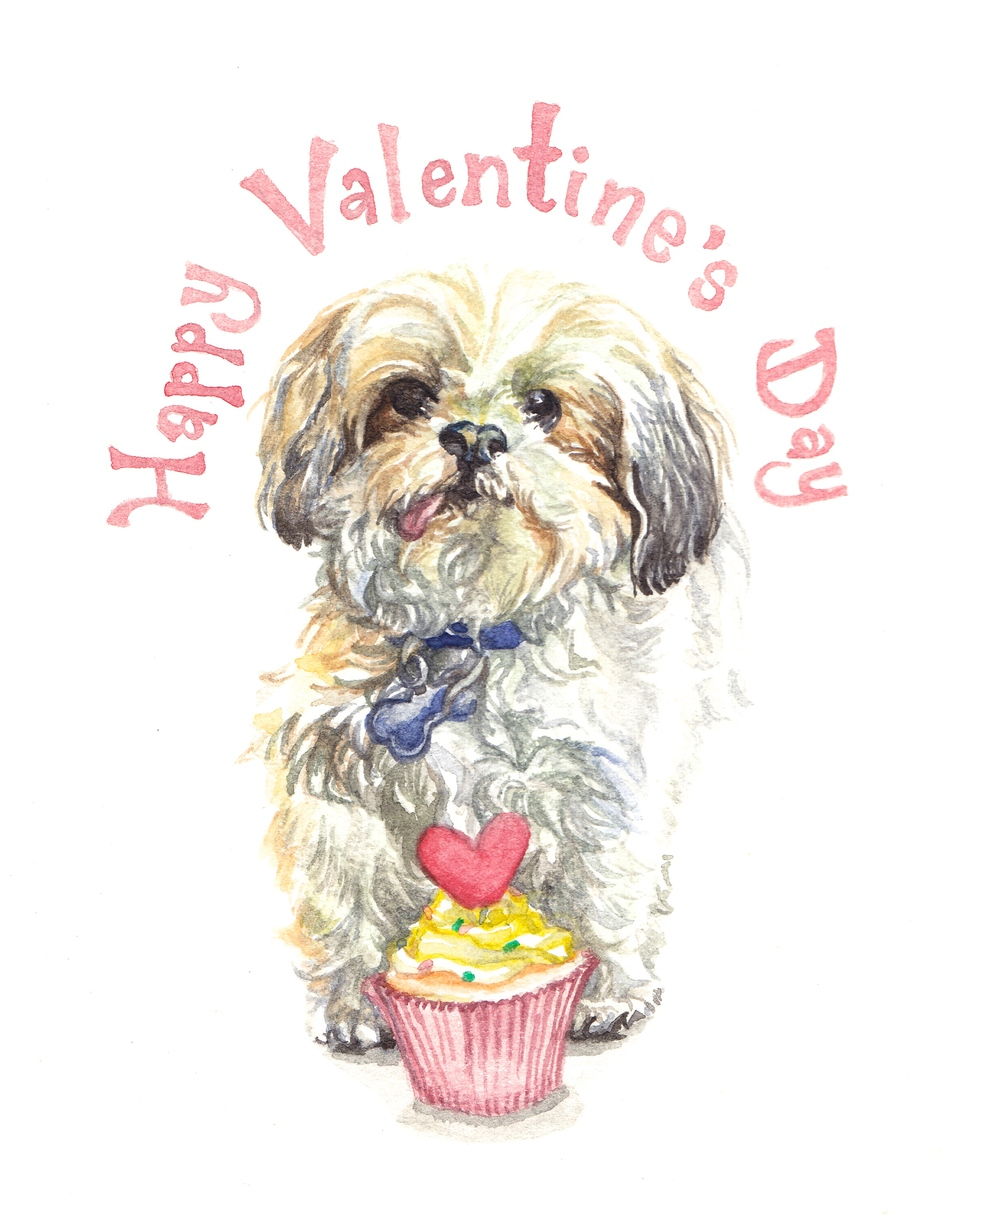 Happy Valentine's Day from Bam Bam, a sweet Shih Tzu from Lucky Dog Animal Rescue.